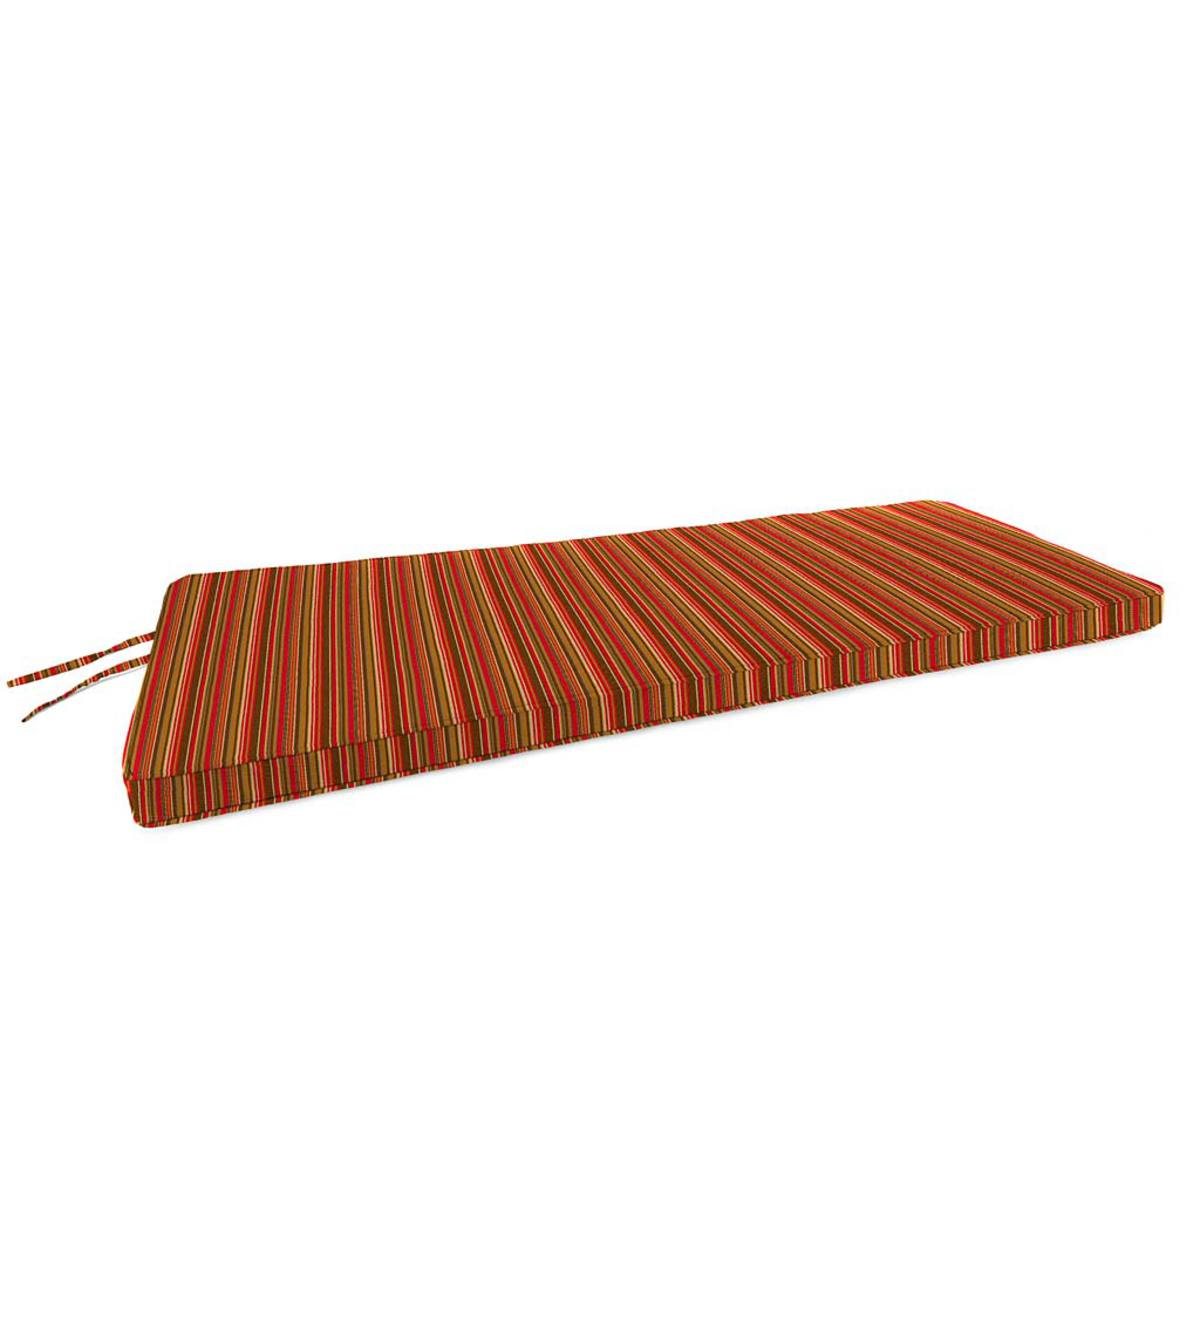 "Deluxe Sunbrella Swing/Bench Cushion with ties 44"" x 18"" x 3"" - Cherry Stripe"